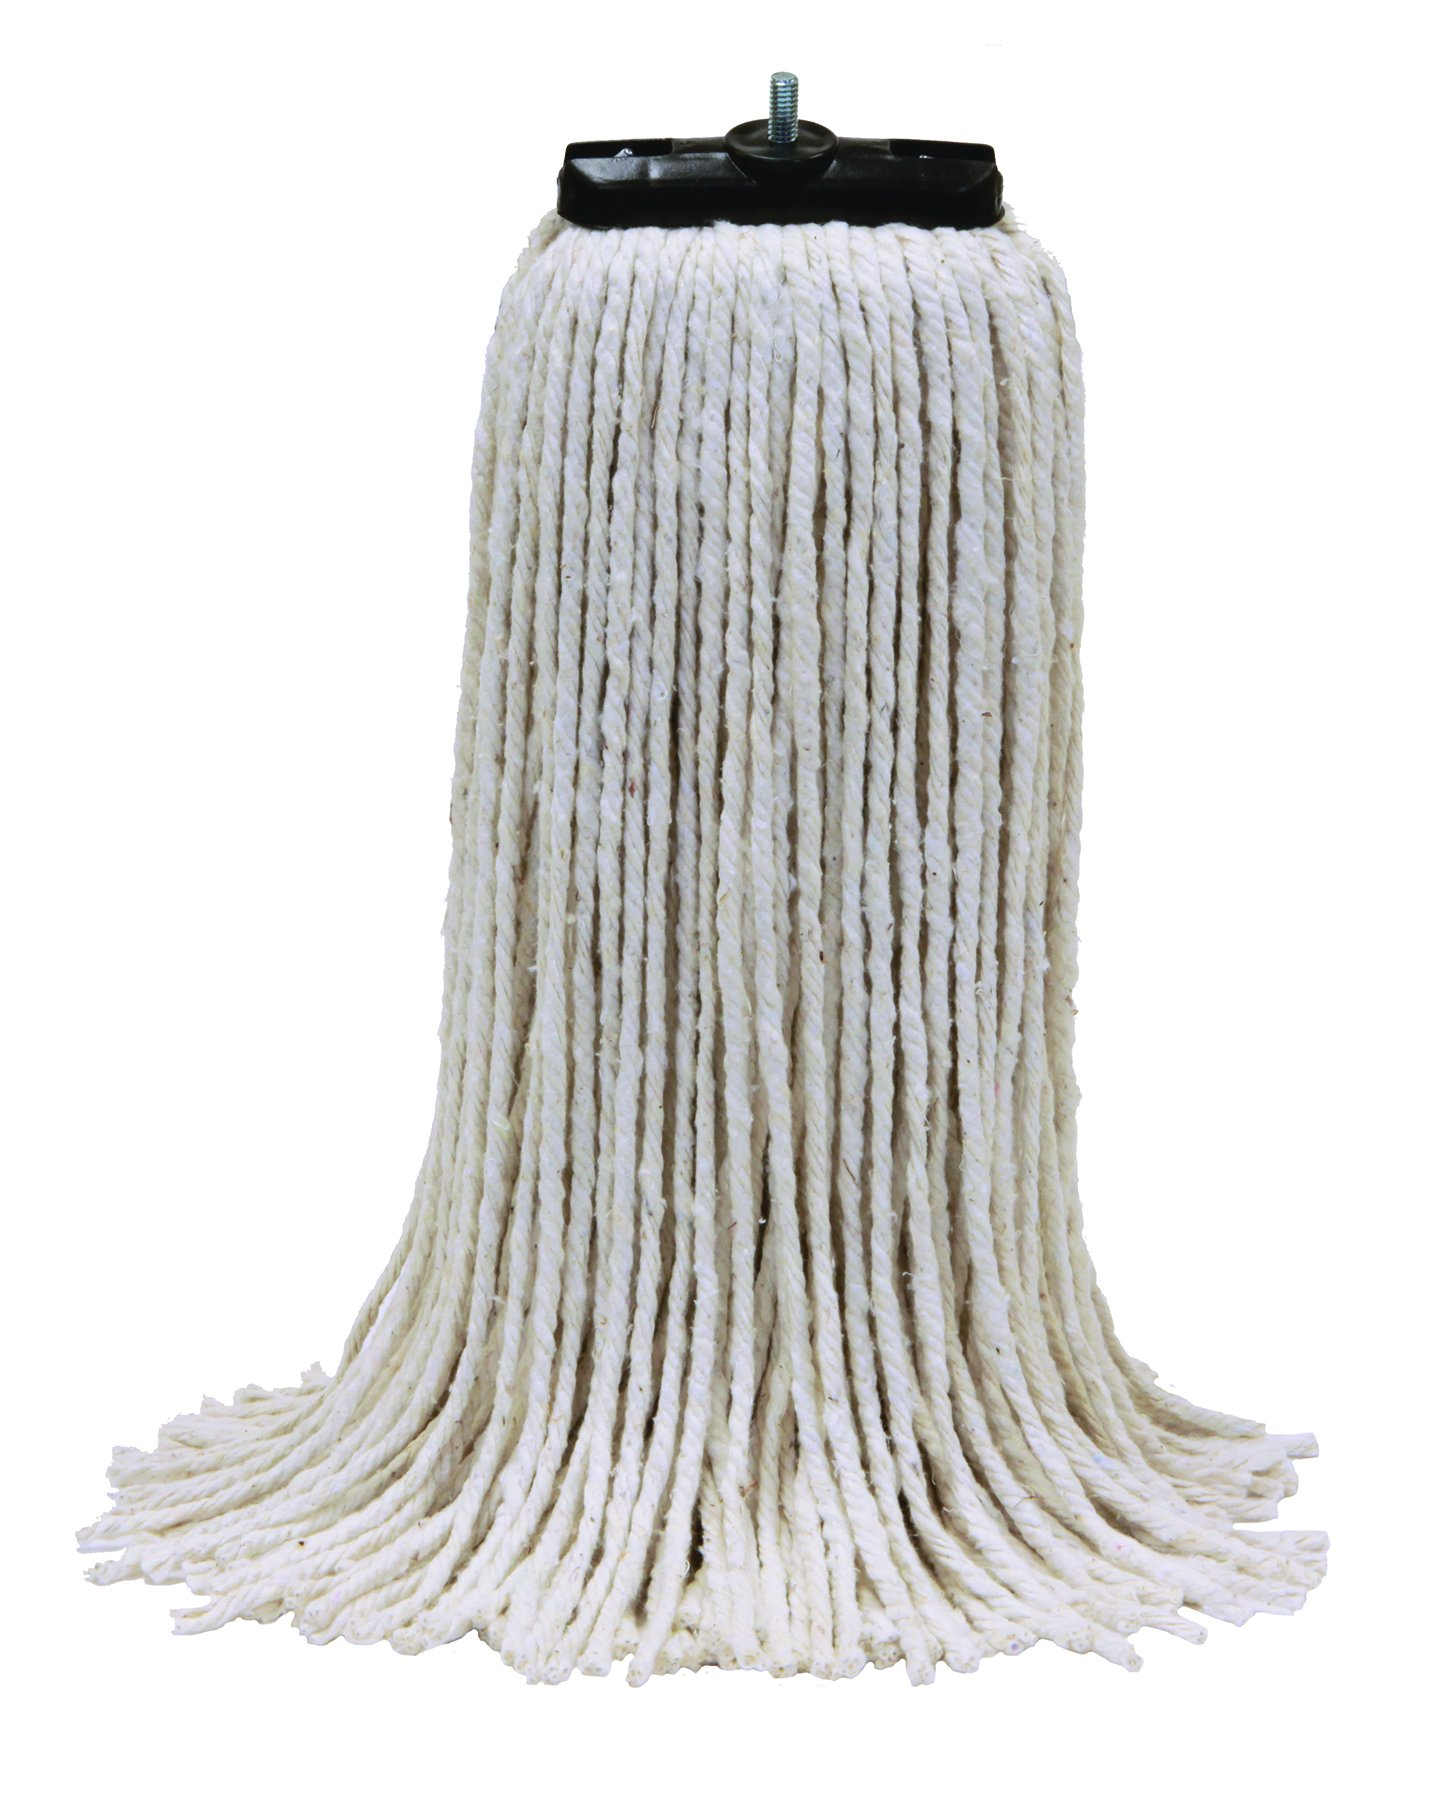 O'Cedar Commercial 97822 MaxiCotton Screw-On Mop, 24 oz (Pack of 12)